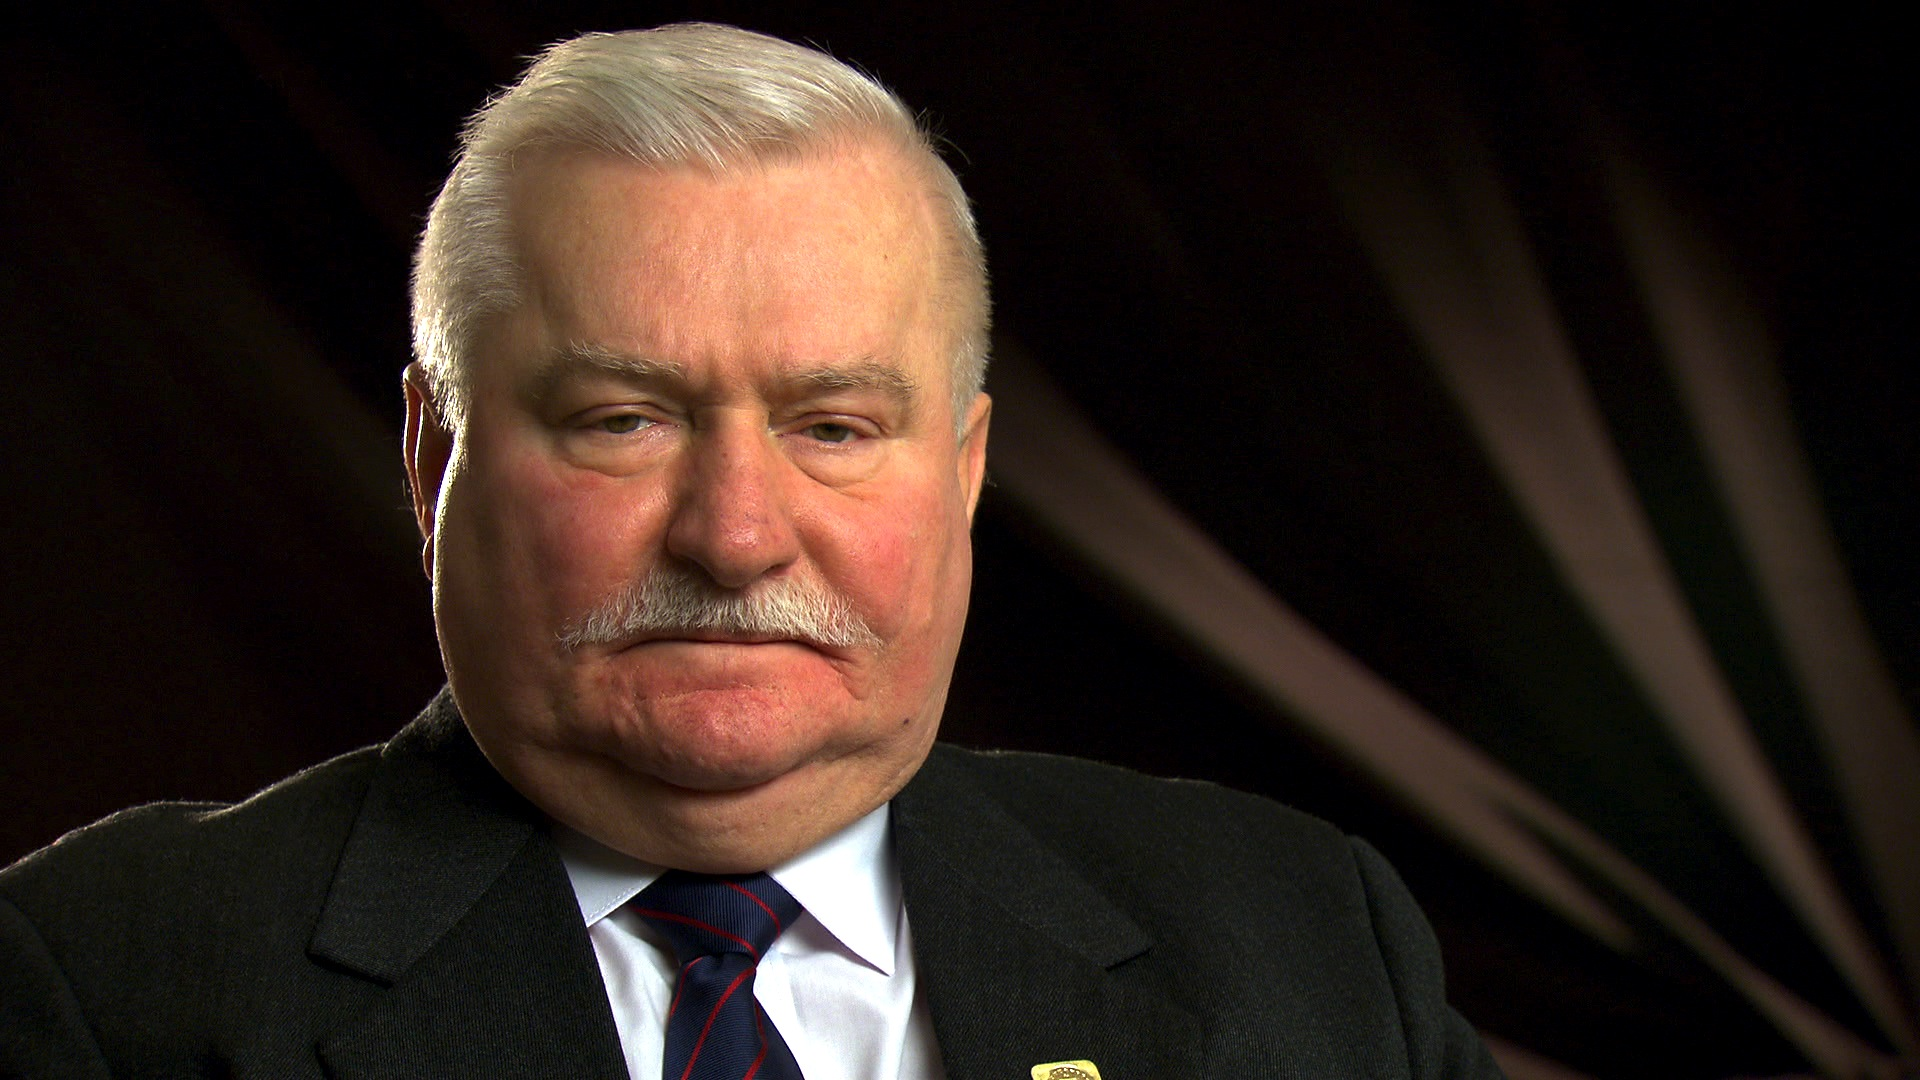 New on the Freedom Collection: Lech Walesa